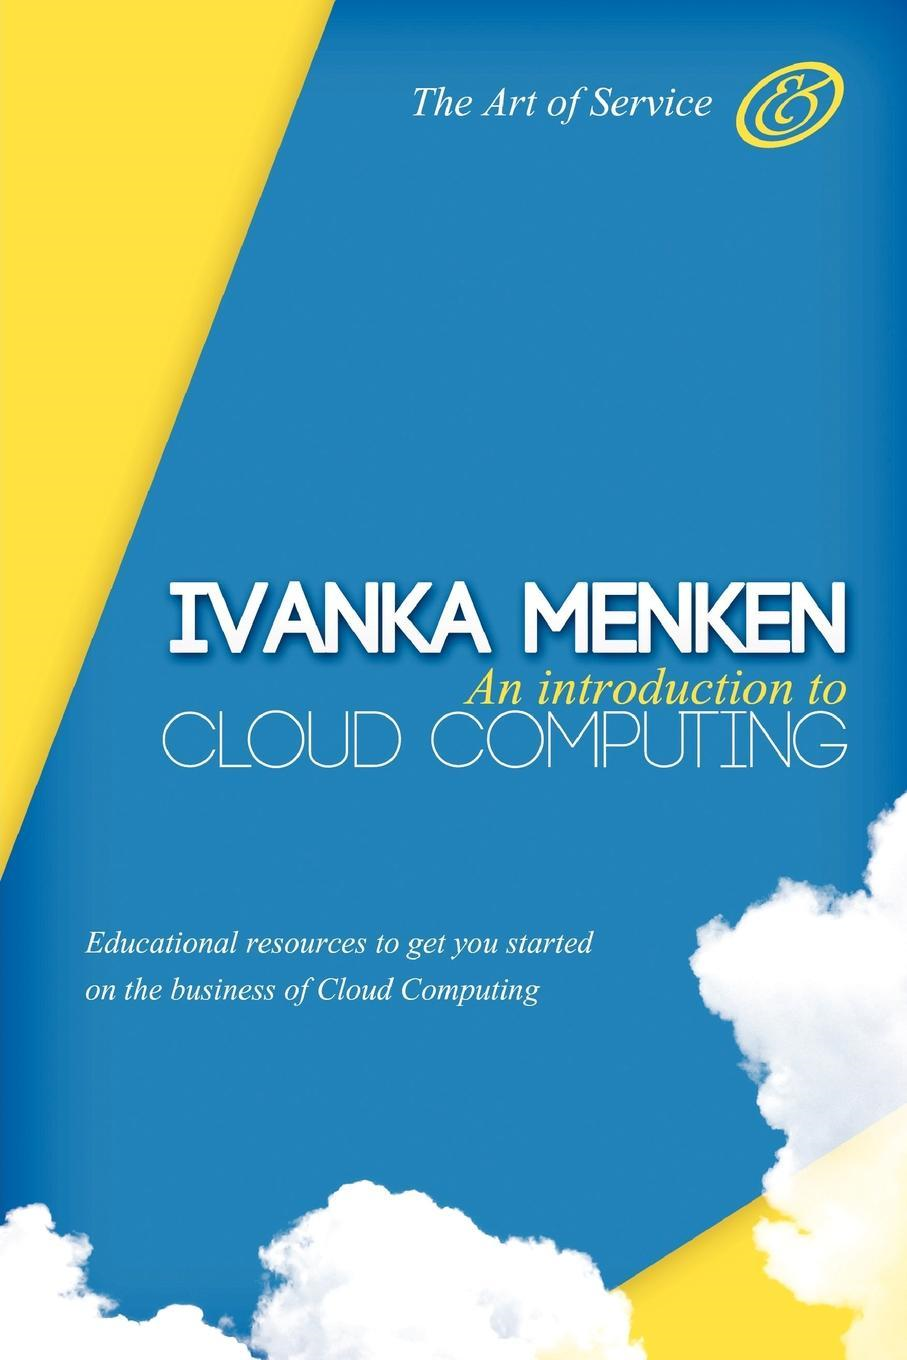 An introduction to Cloud Computing - Educational resources to get you started on the Business of Cloud Computing